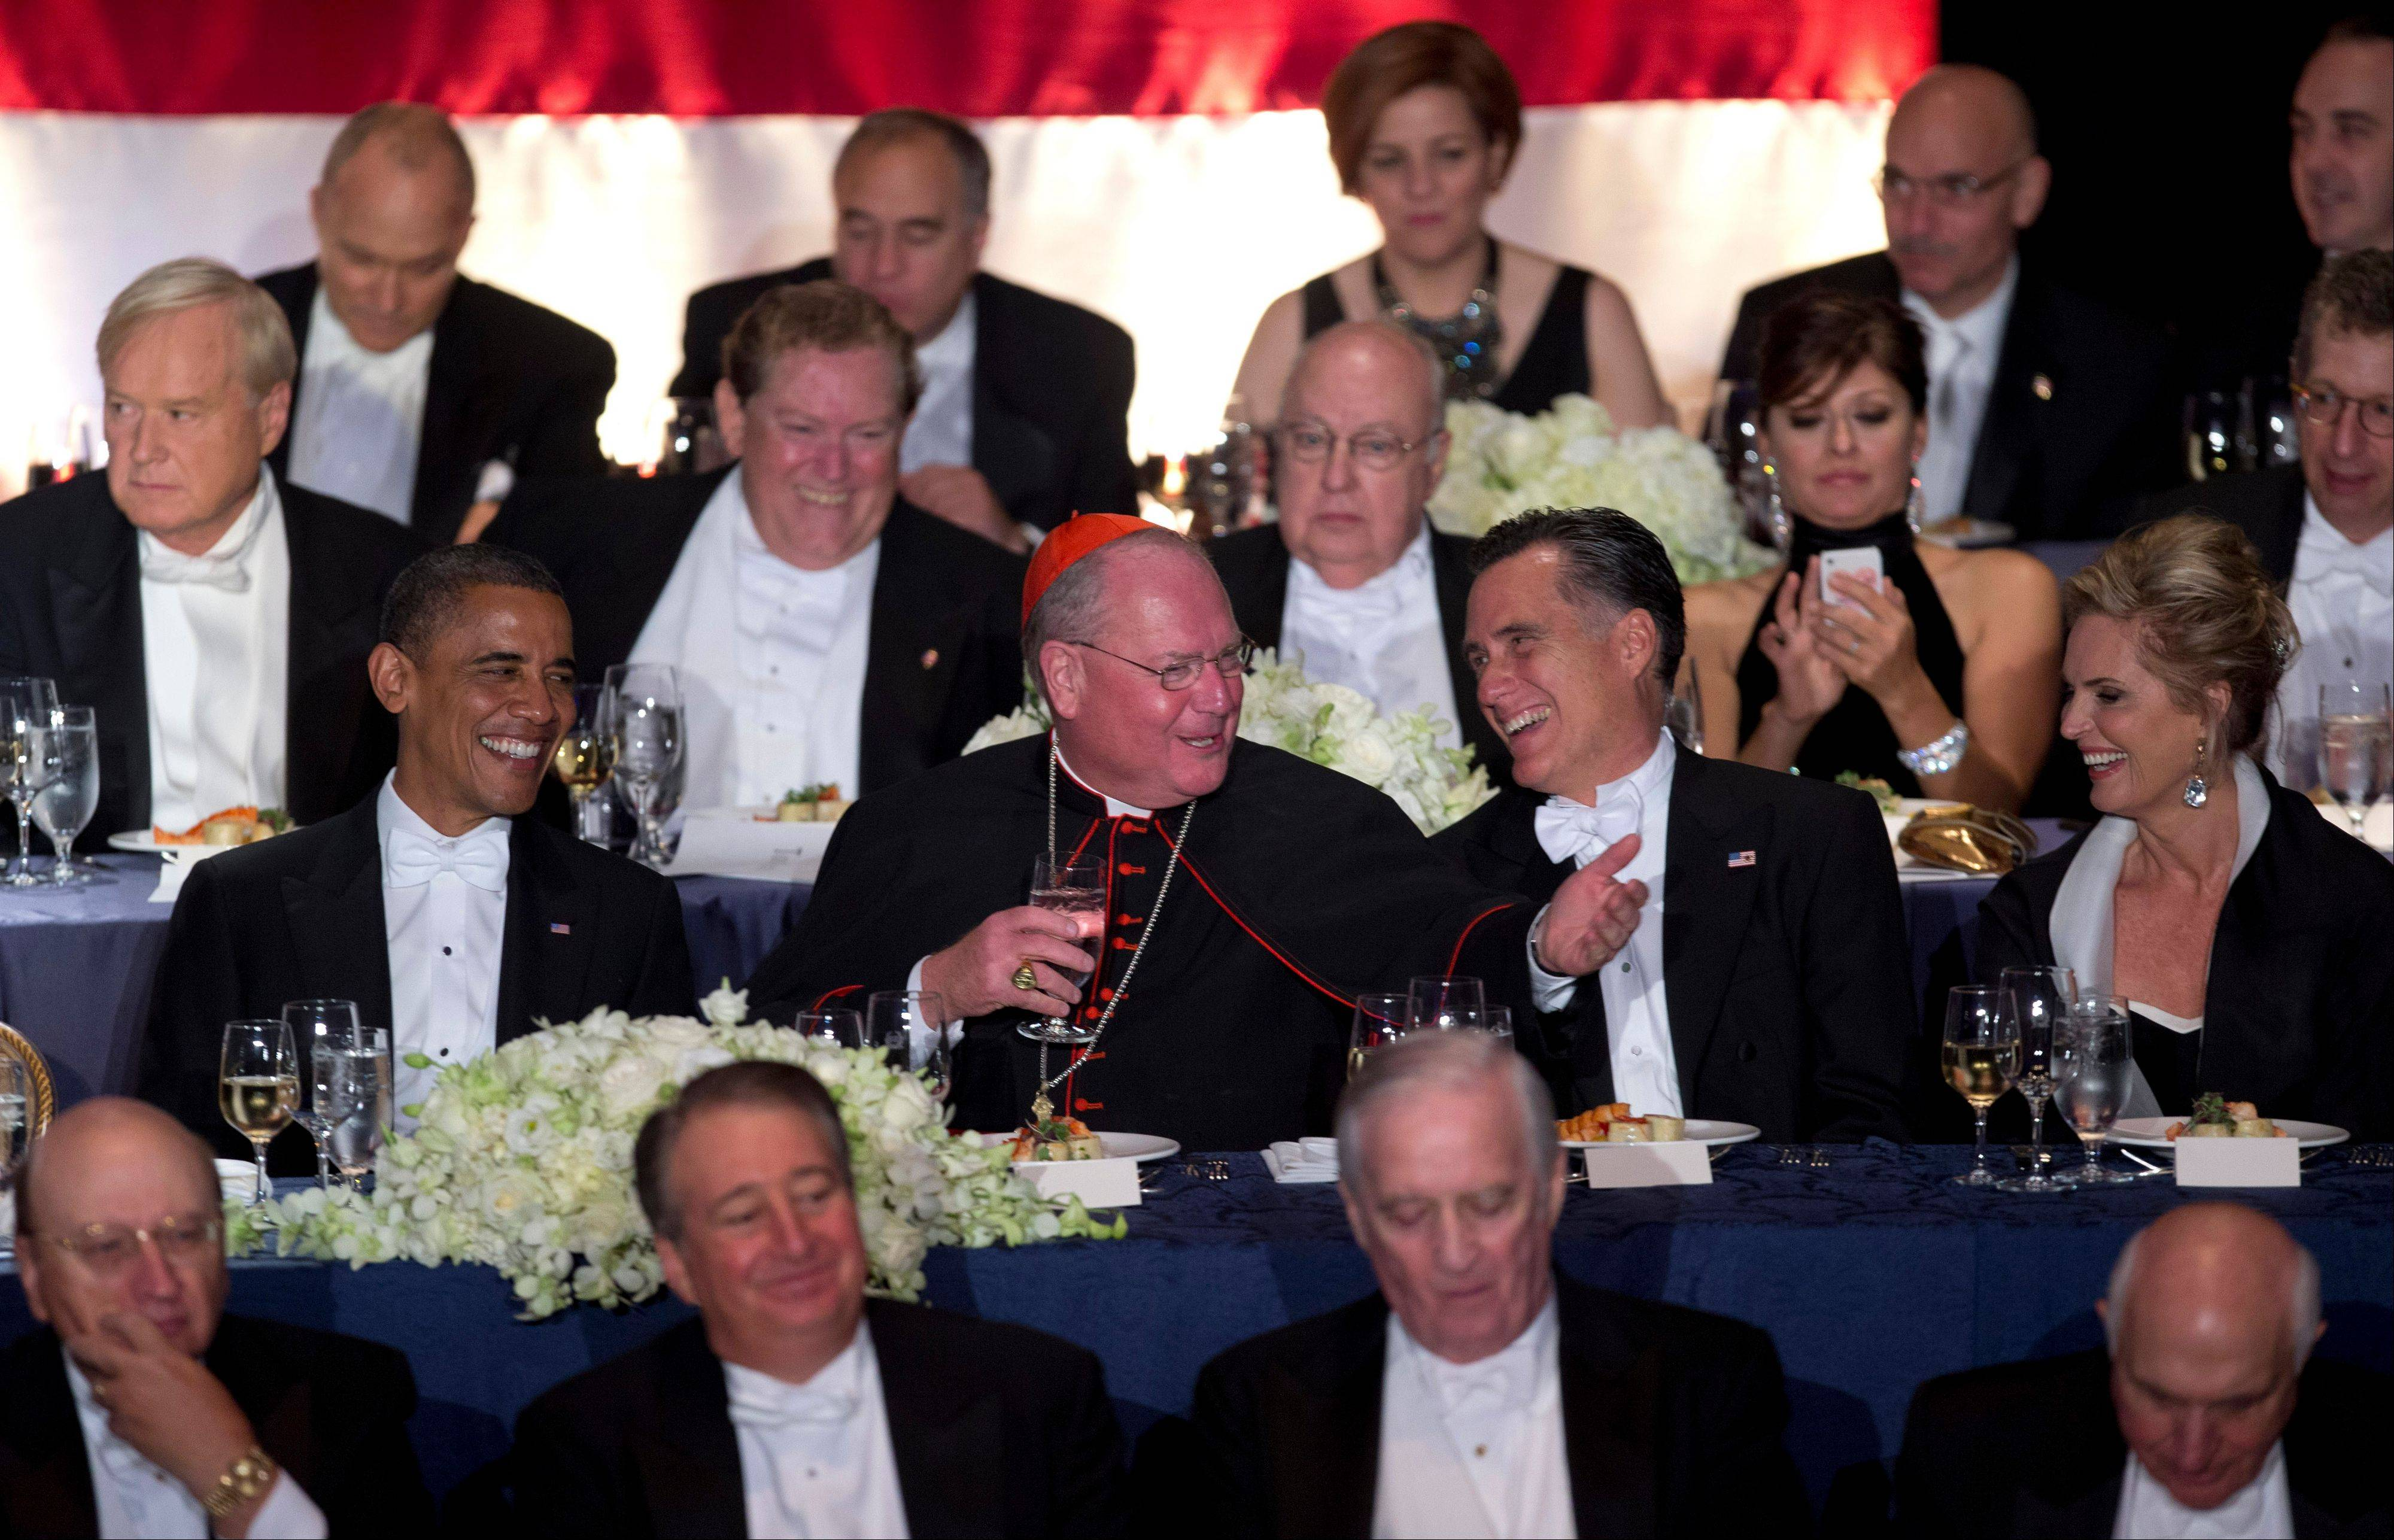 ASSOCIATED PRESS You might think at first that Cardinal Timothy Dolan was strategically placed between presidential candidates President Barack and former Gov. Mitt Romney as a peacekeeper. But the 67th annual Alfred. E. Smith Memorial Foundation Dinner Thursday in New York has been campaign tradition where comic relief prevails. That�s Ann Romney, the governor�s wife, at the far right.